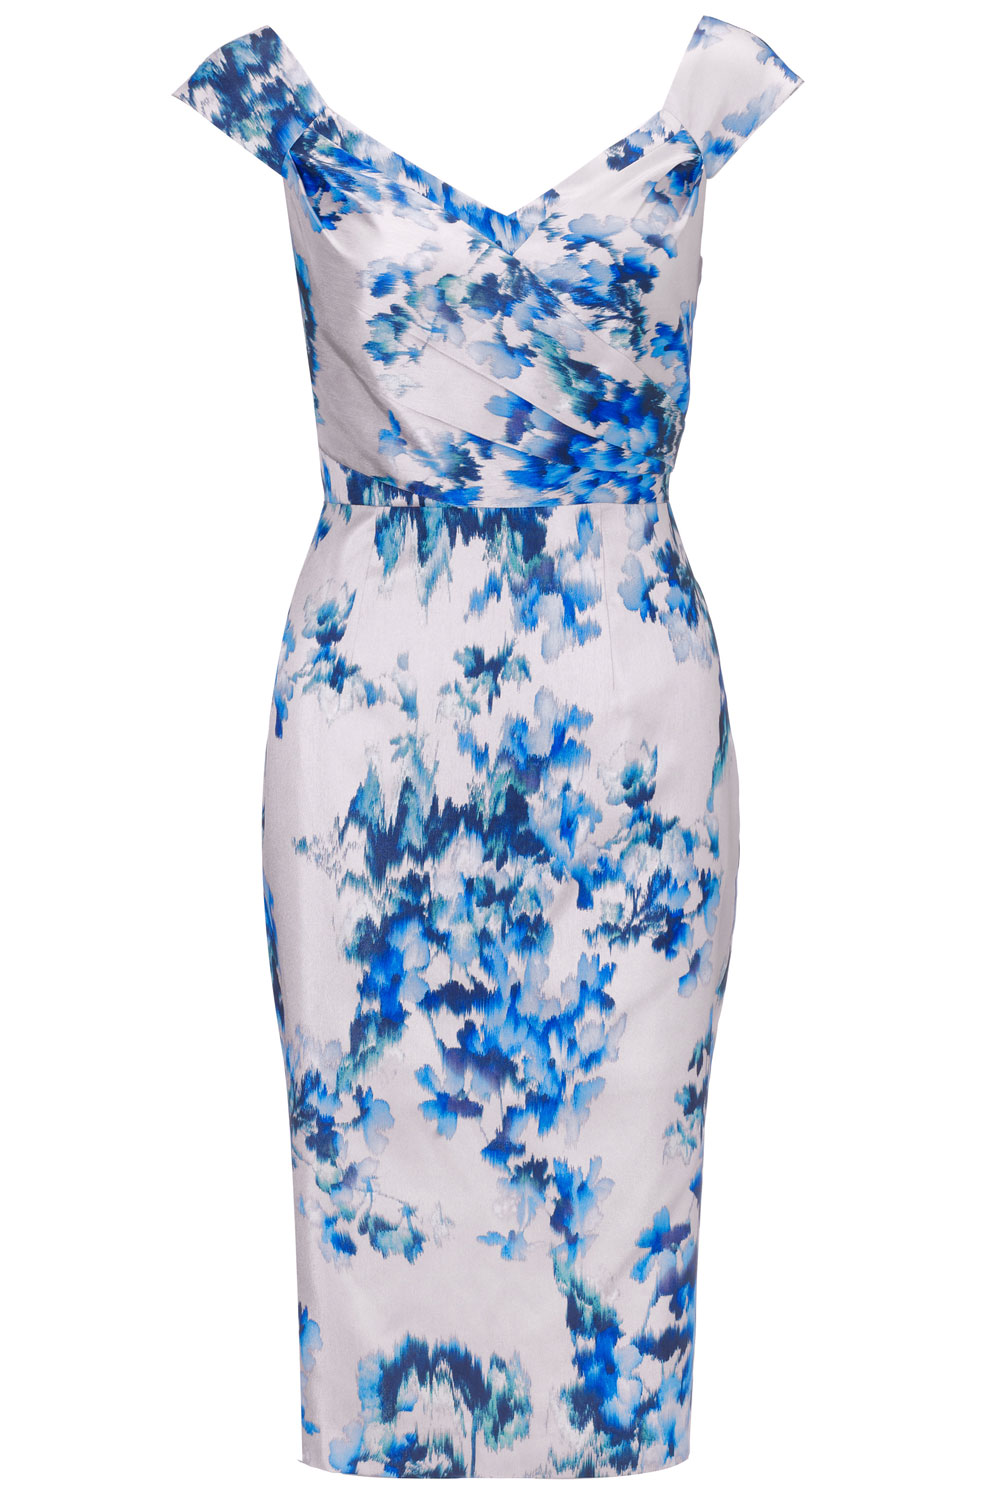 Amazing Monsoon Dresses Wedding Guests Collection - All Wedding ...